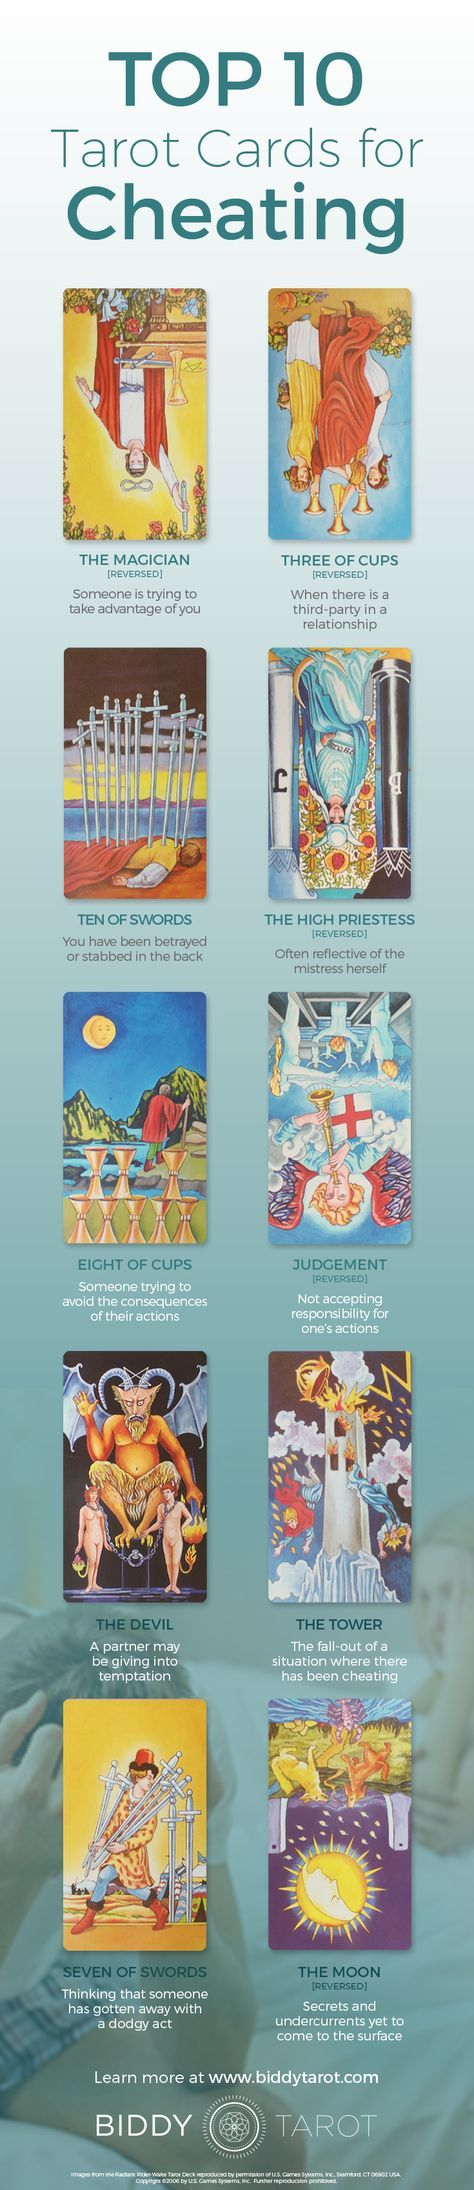 Top 10 Tarot Cards for Cheating